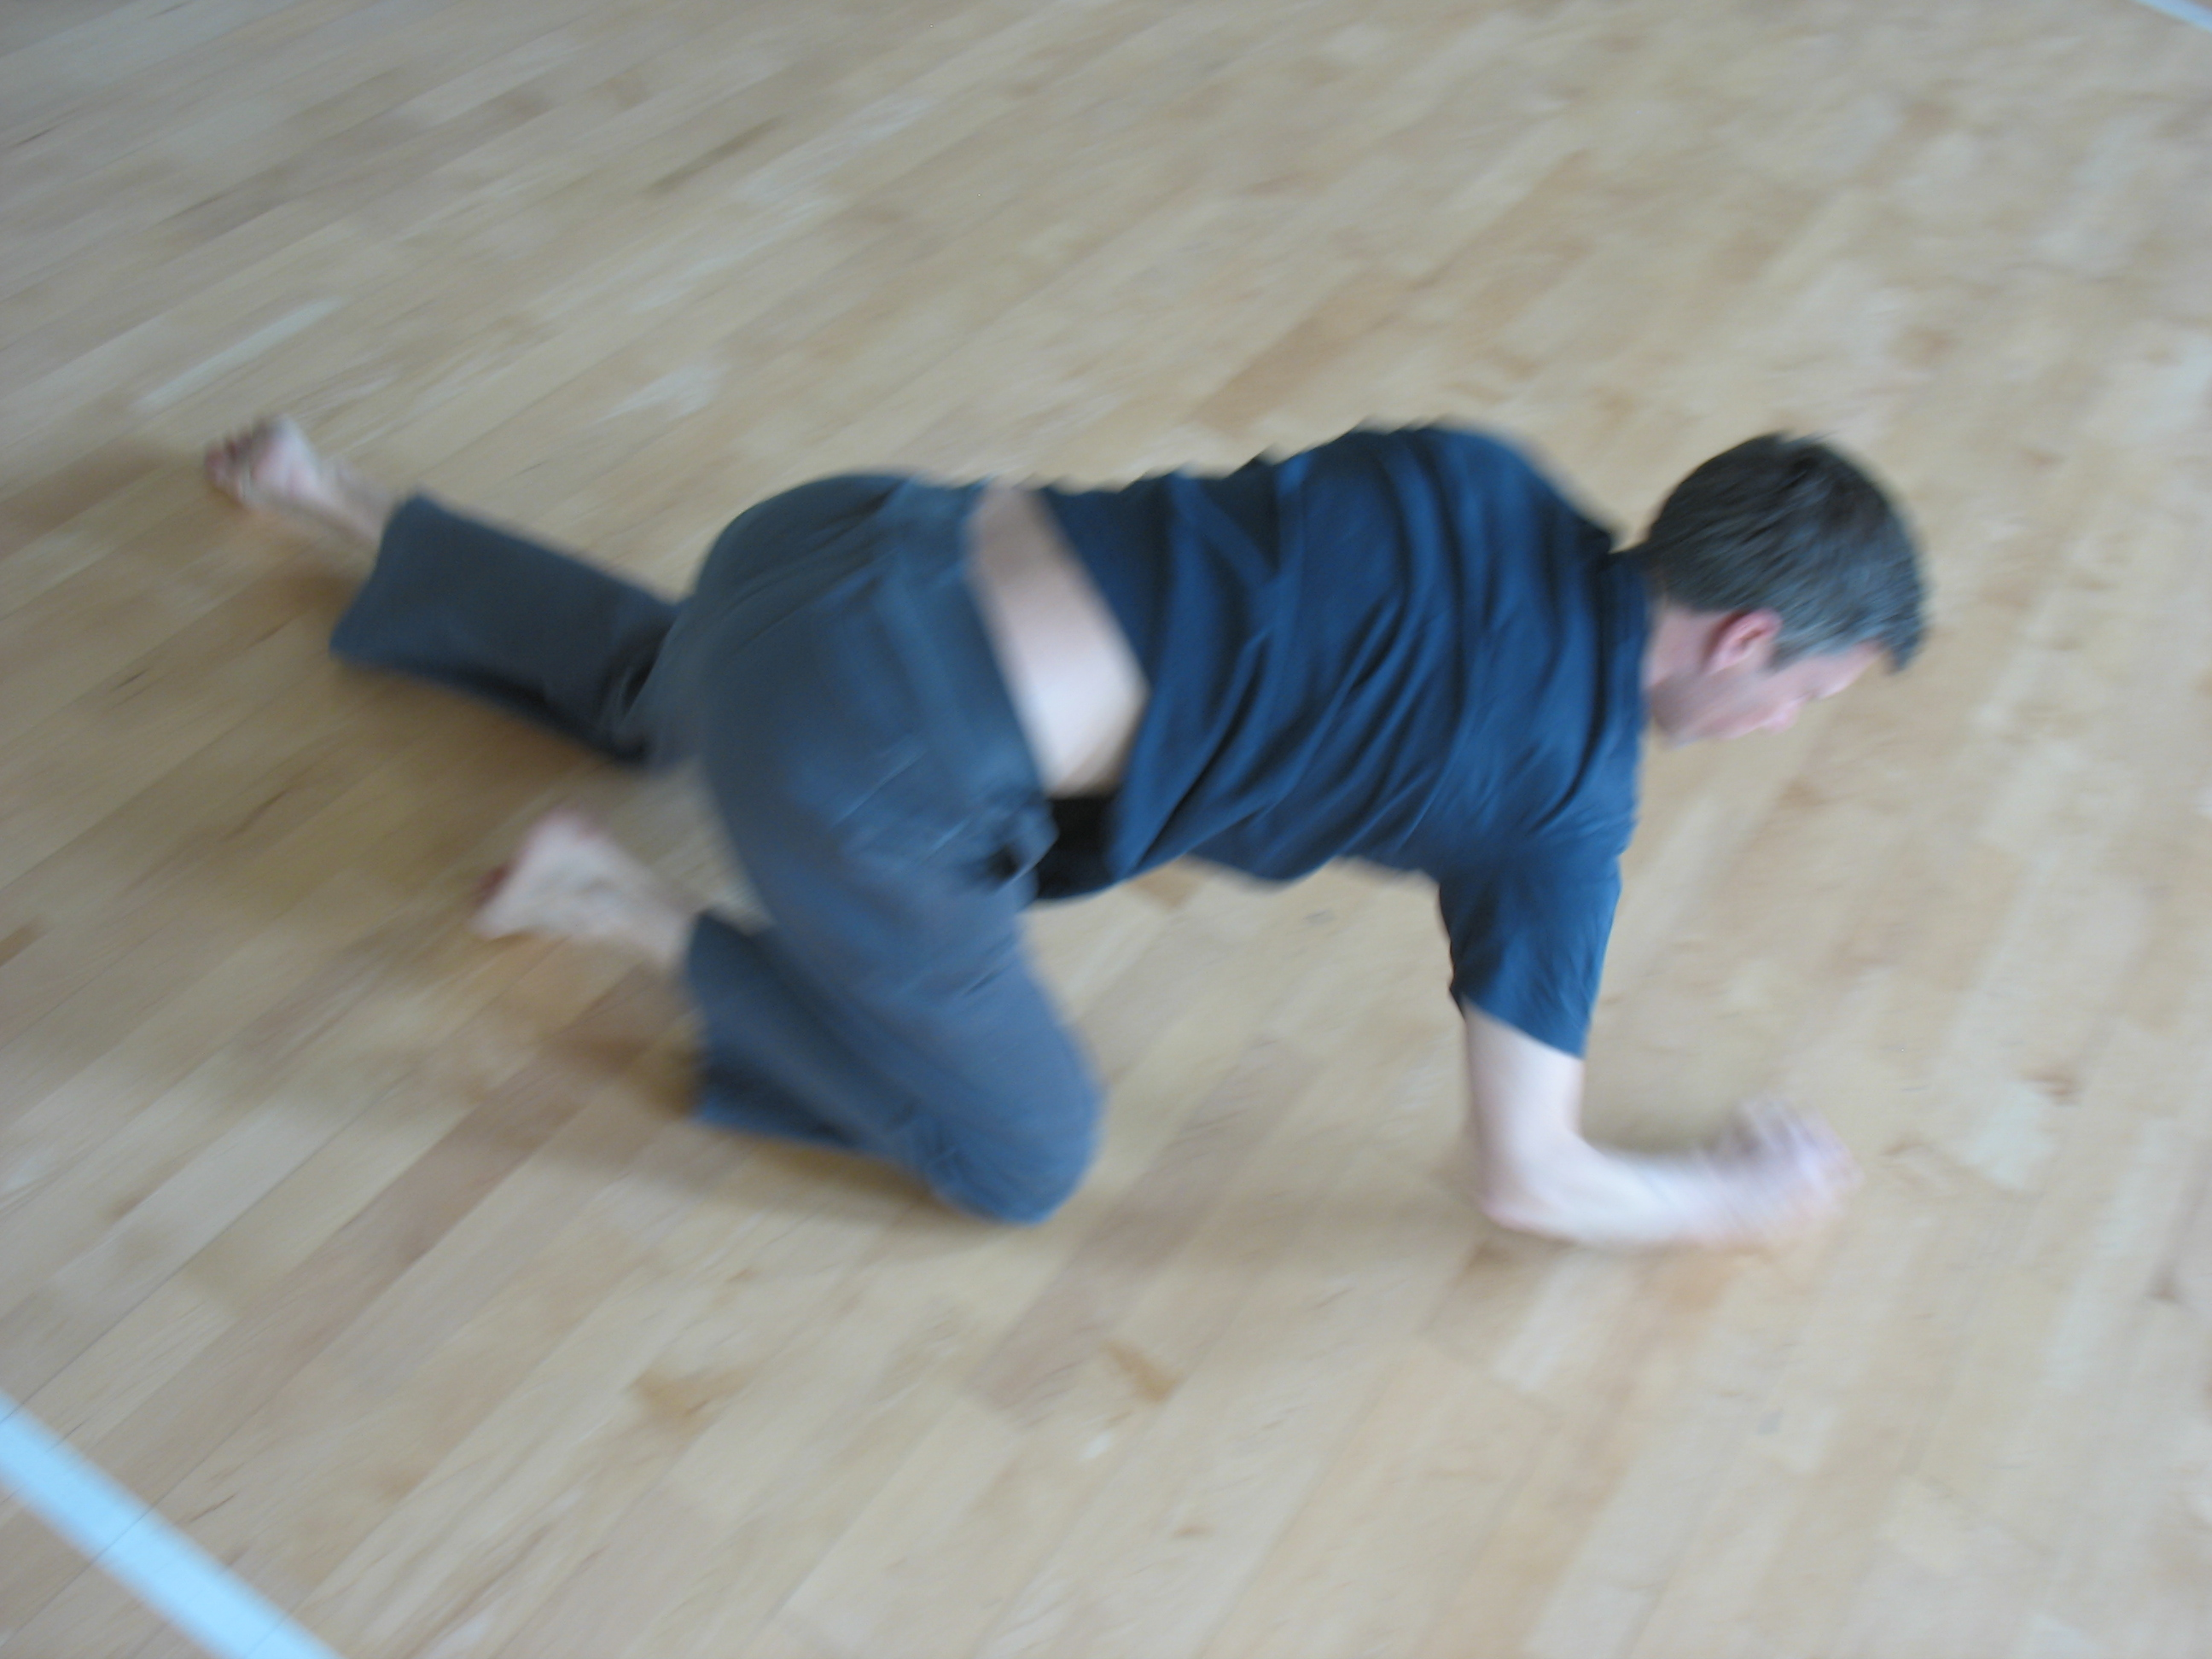 Man moving on the floor